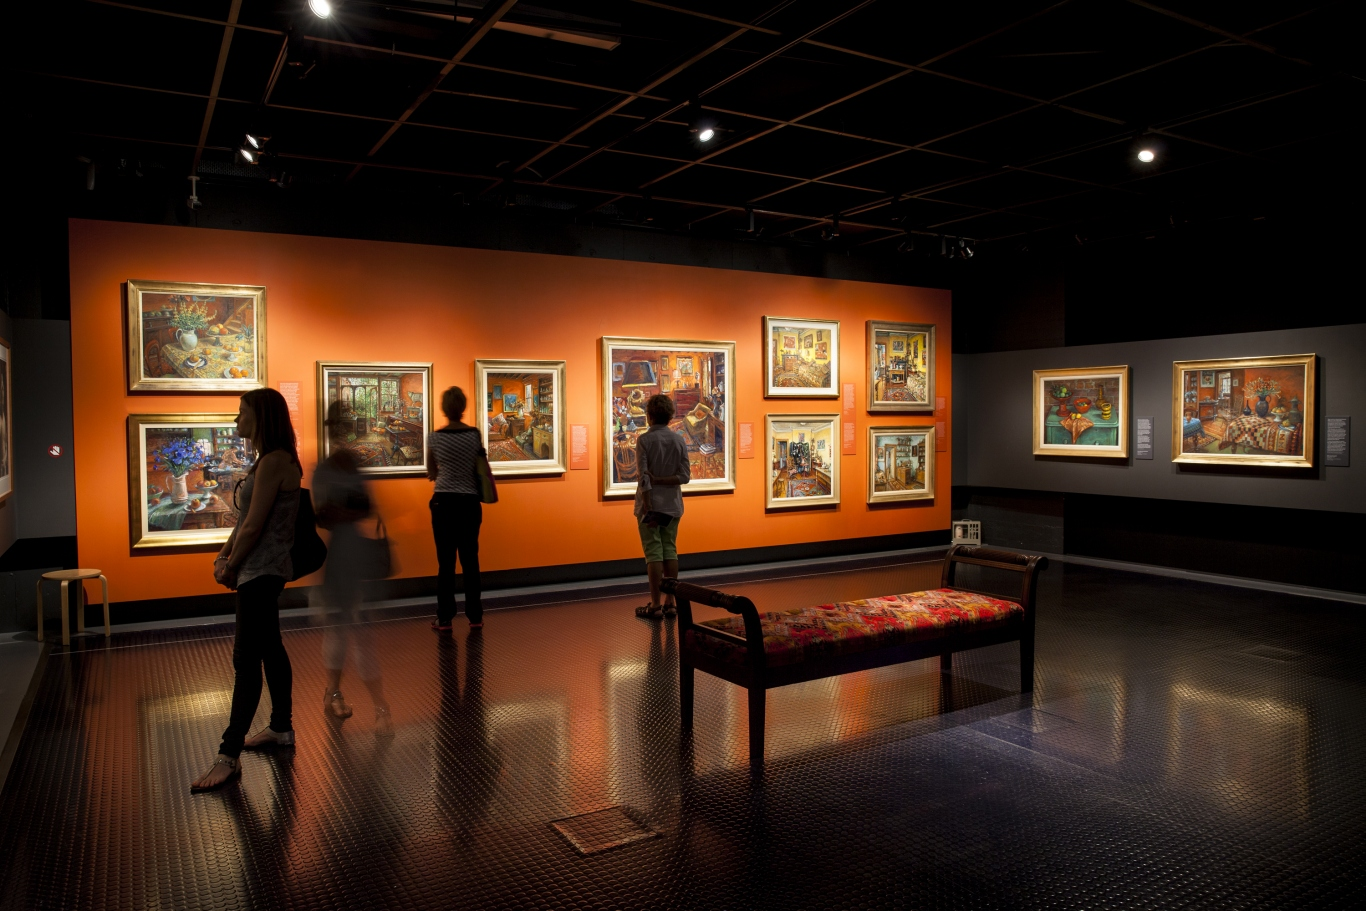 Photo of a darkened gallery with Margaret Olley paintings on the walls. Visitors are standing in the space.